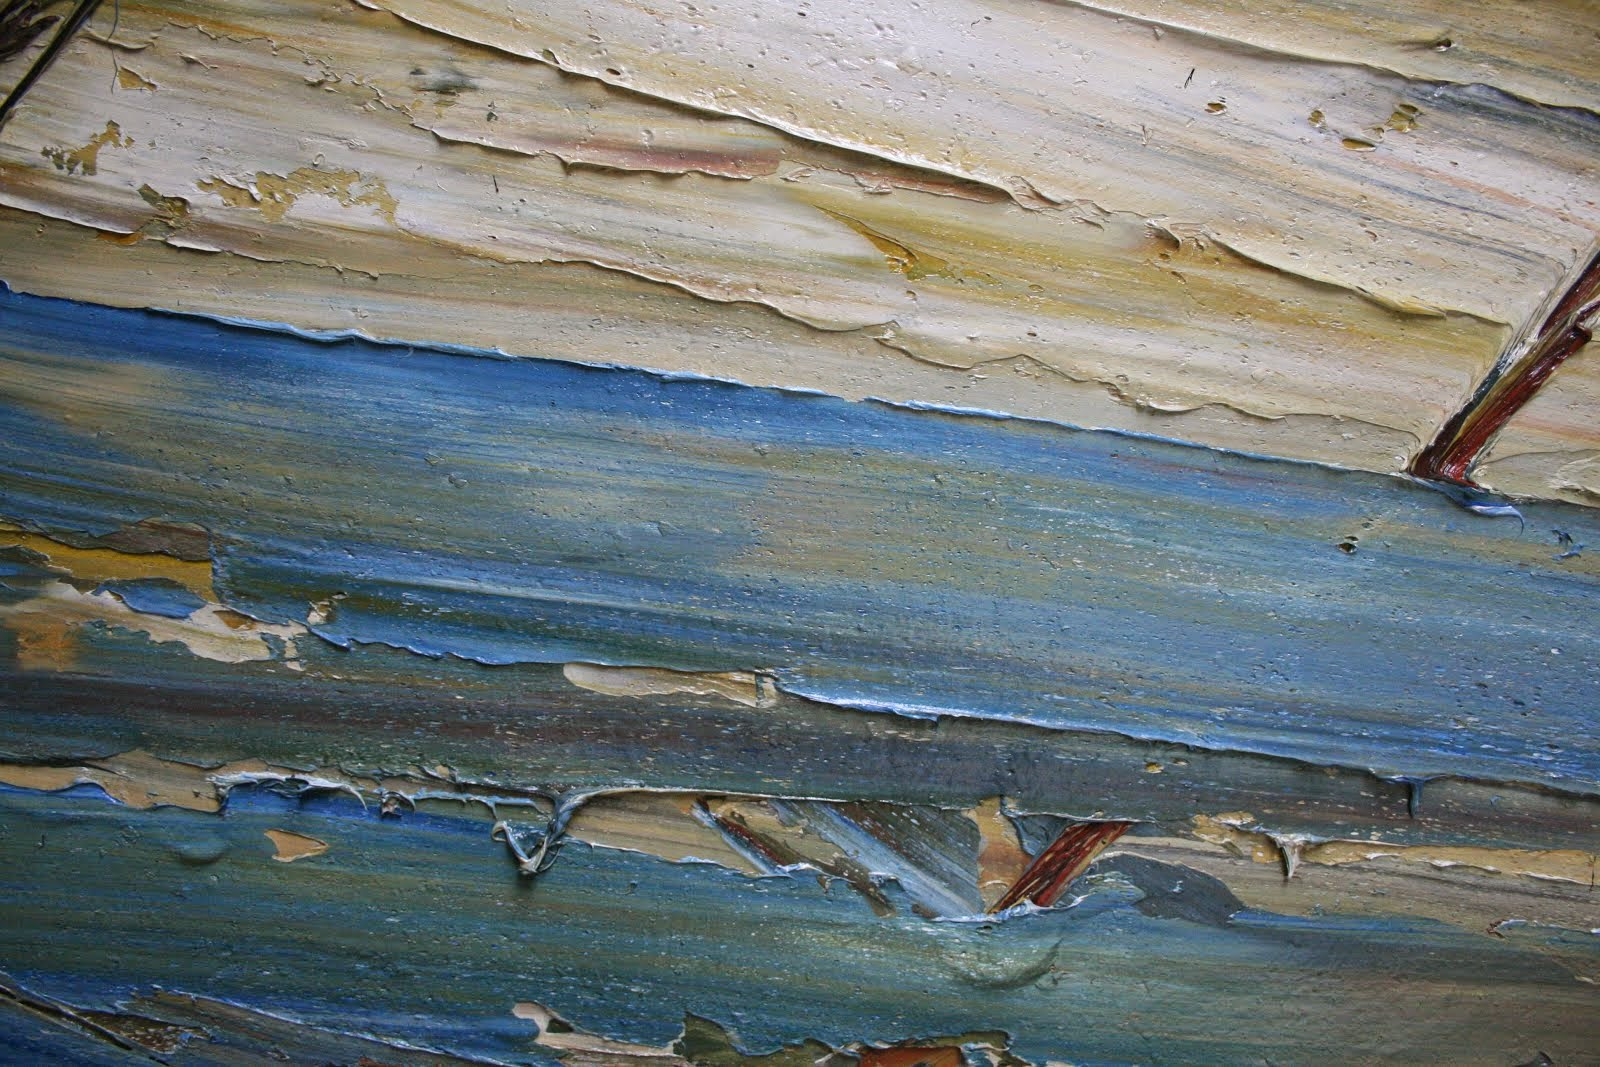 Detail of his work